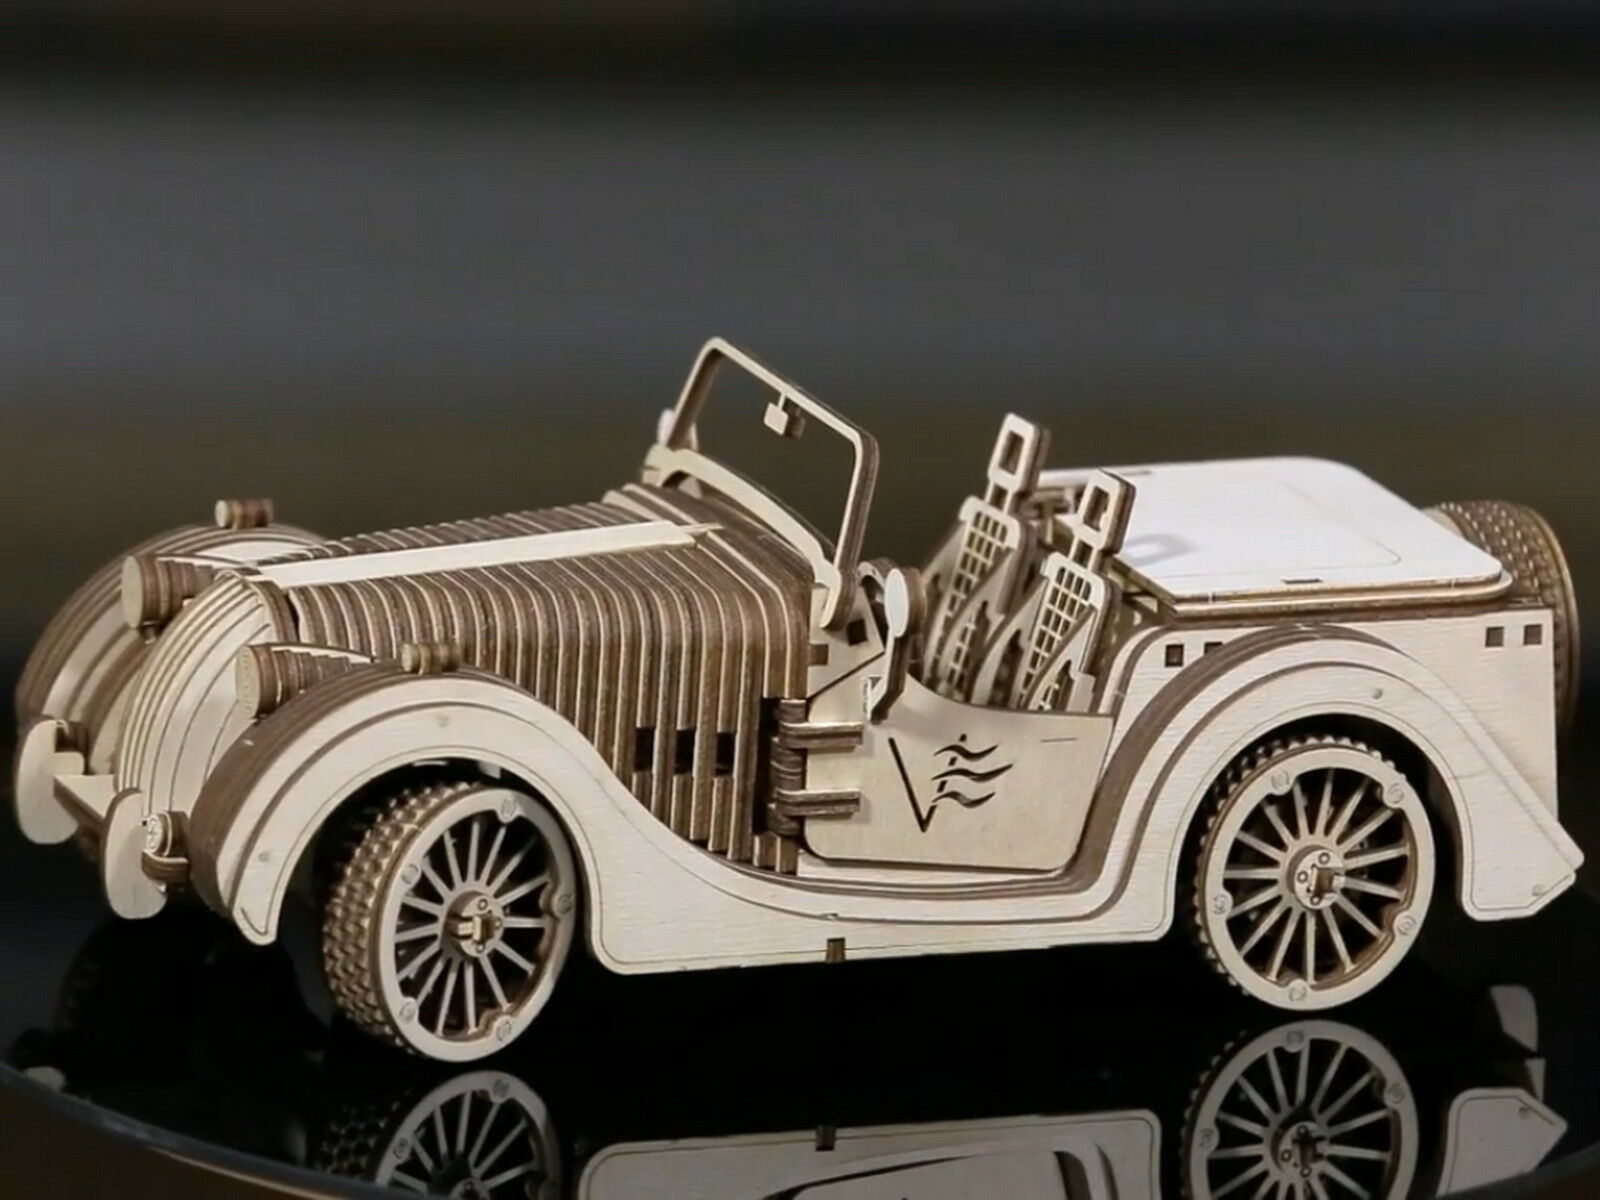 Roadster Model Classic Car 3D Wood Puzzle DIY Mechanical Toy Assembly Gears Kit